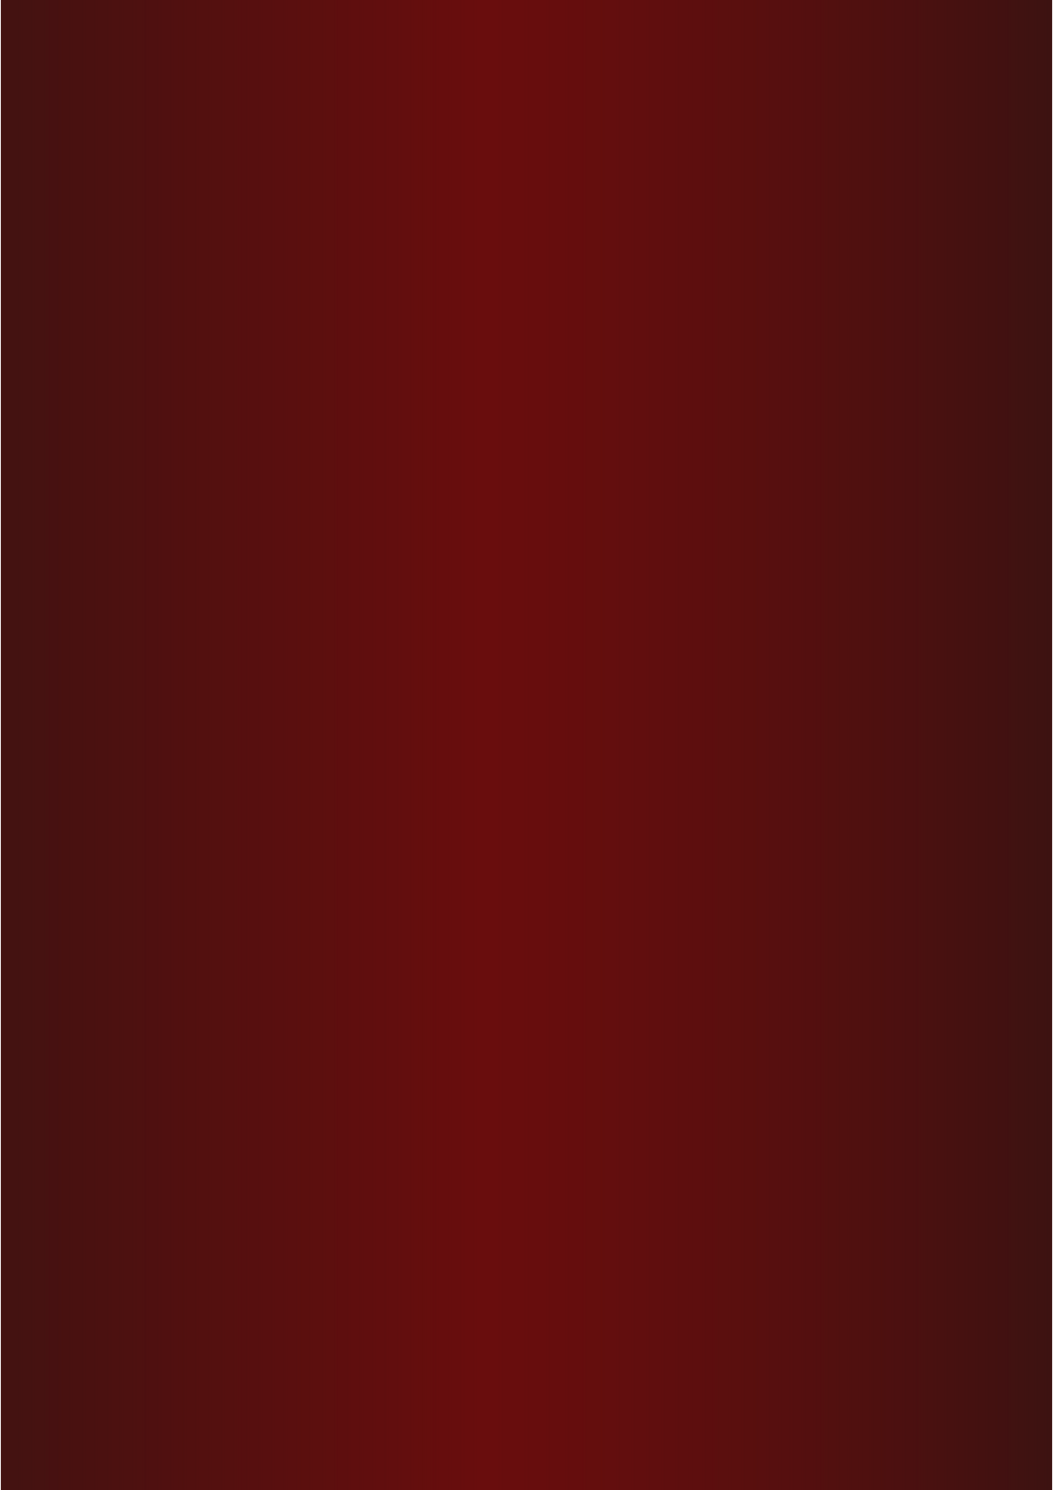 Red_BG-06.png